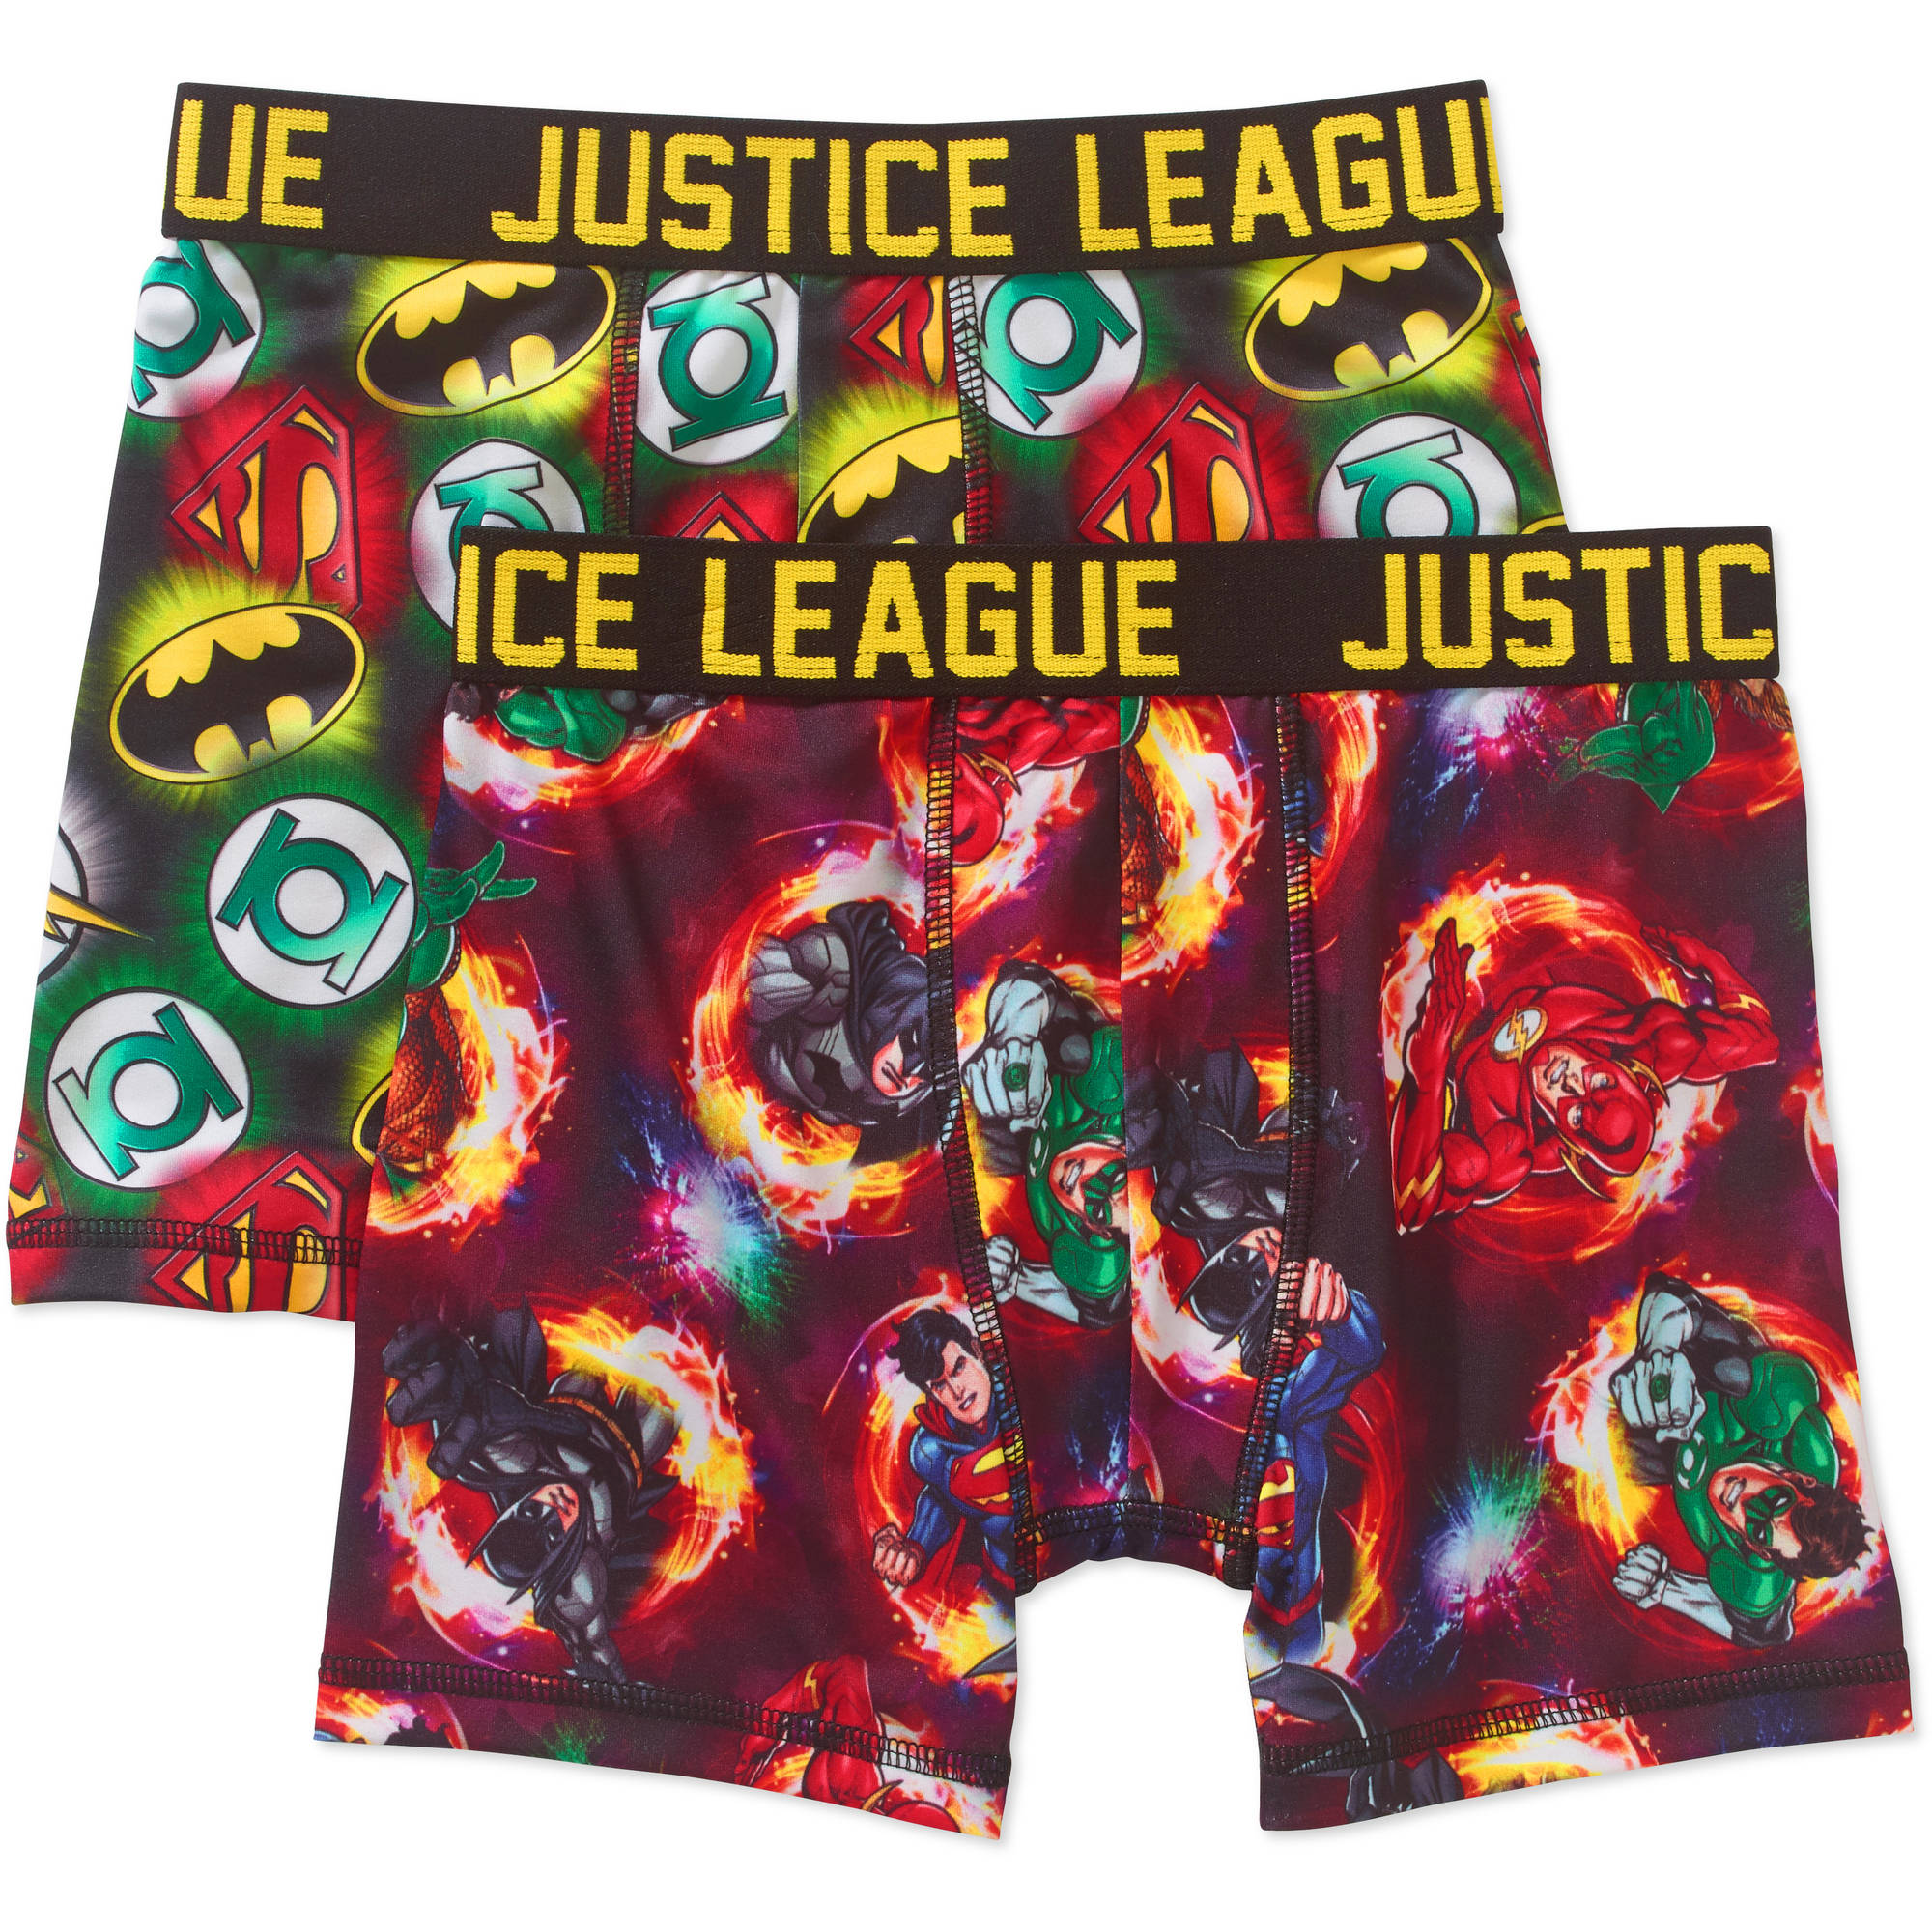 Generic Justice League Boys' Wrinkle Resistant Boxer Brief, 2 - Pack